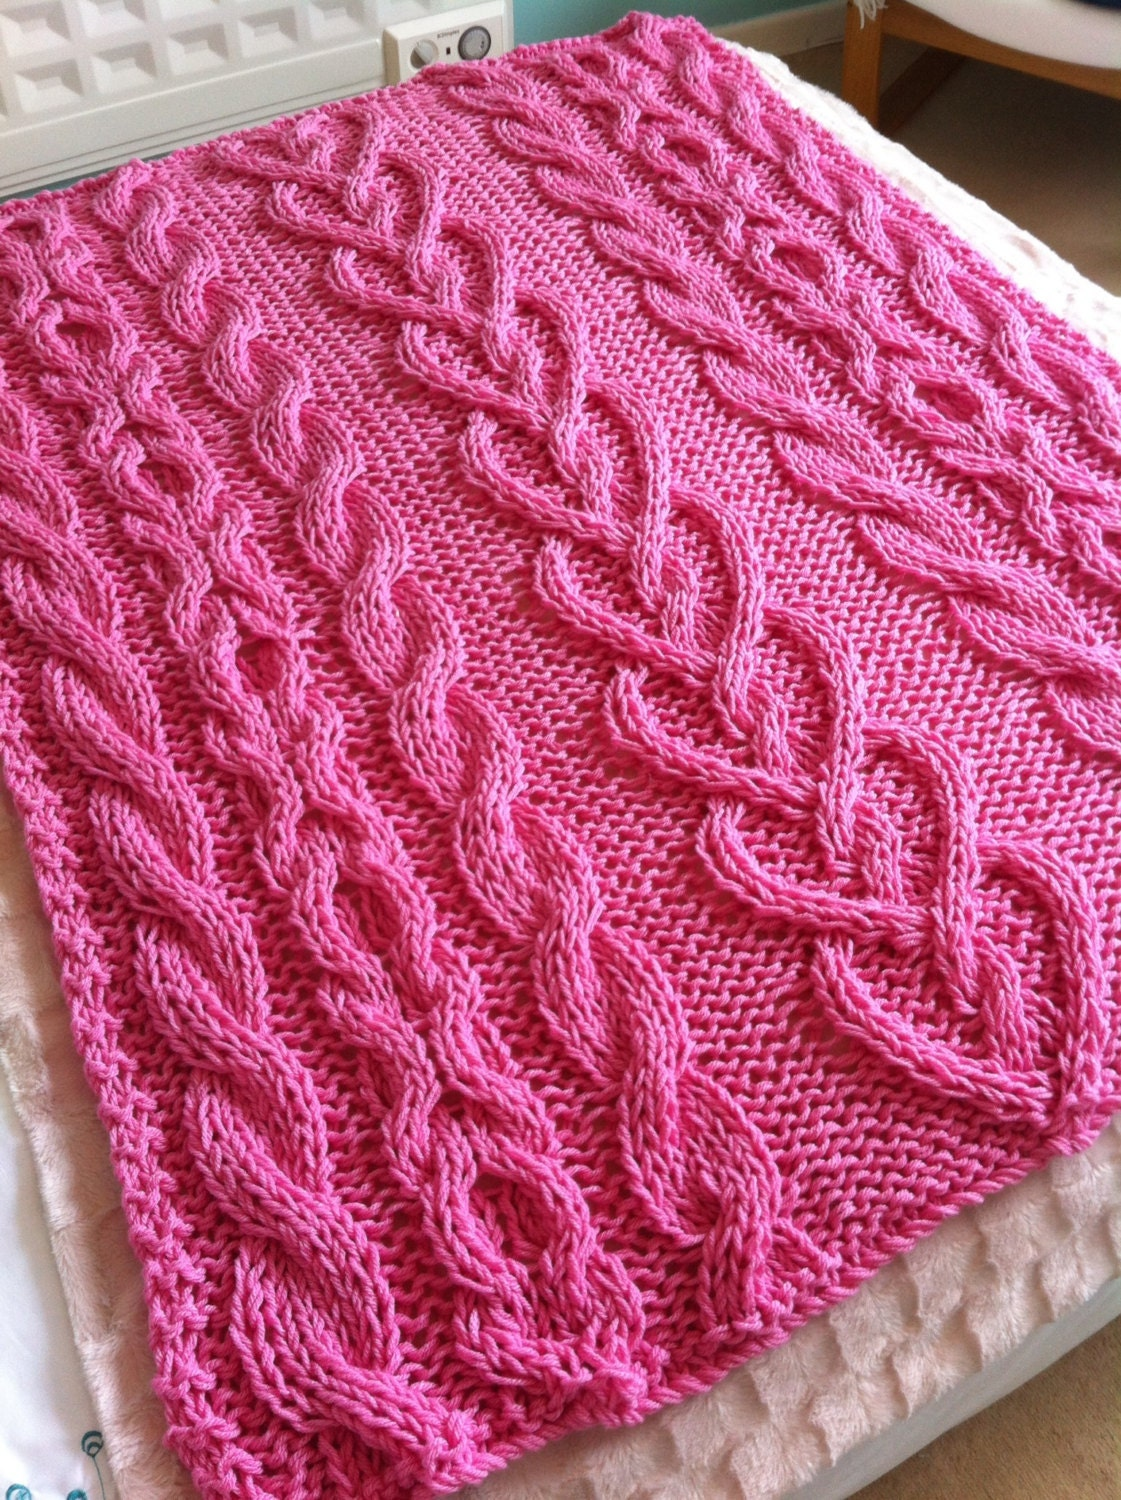 Chunky Cable and Hearts hand knit blanket / throw Pretty